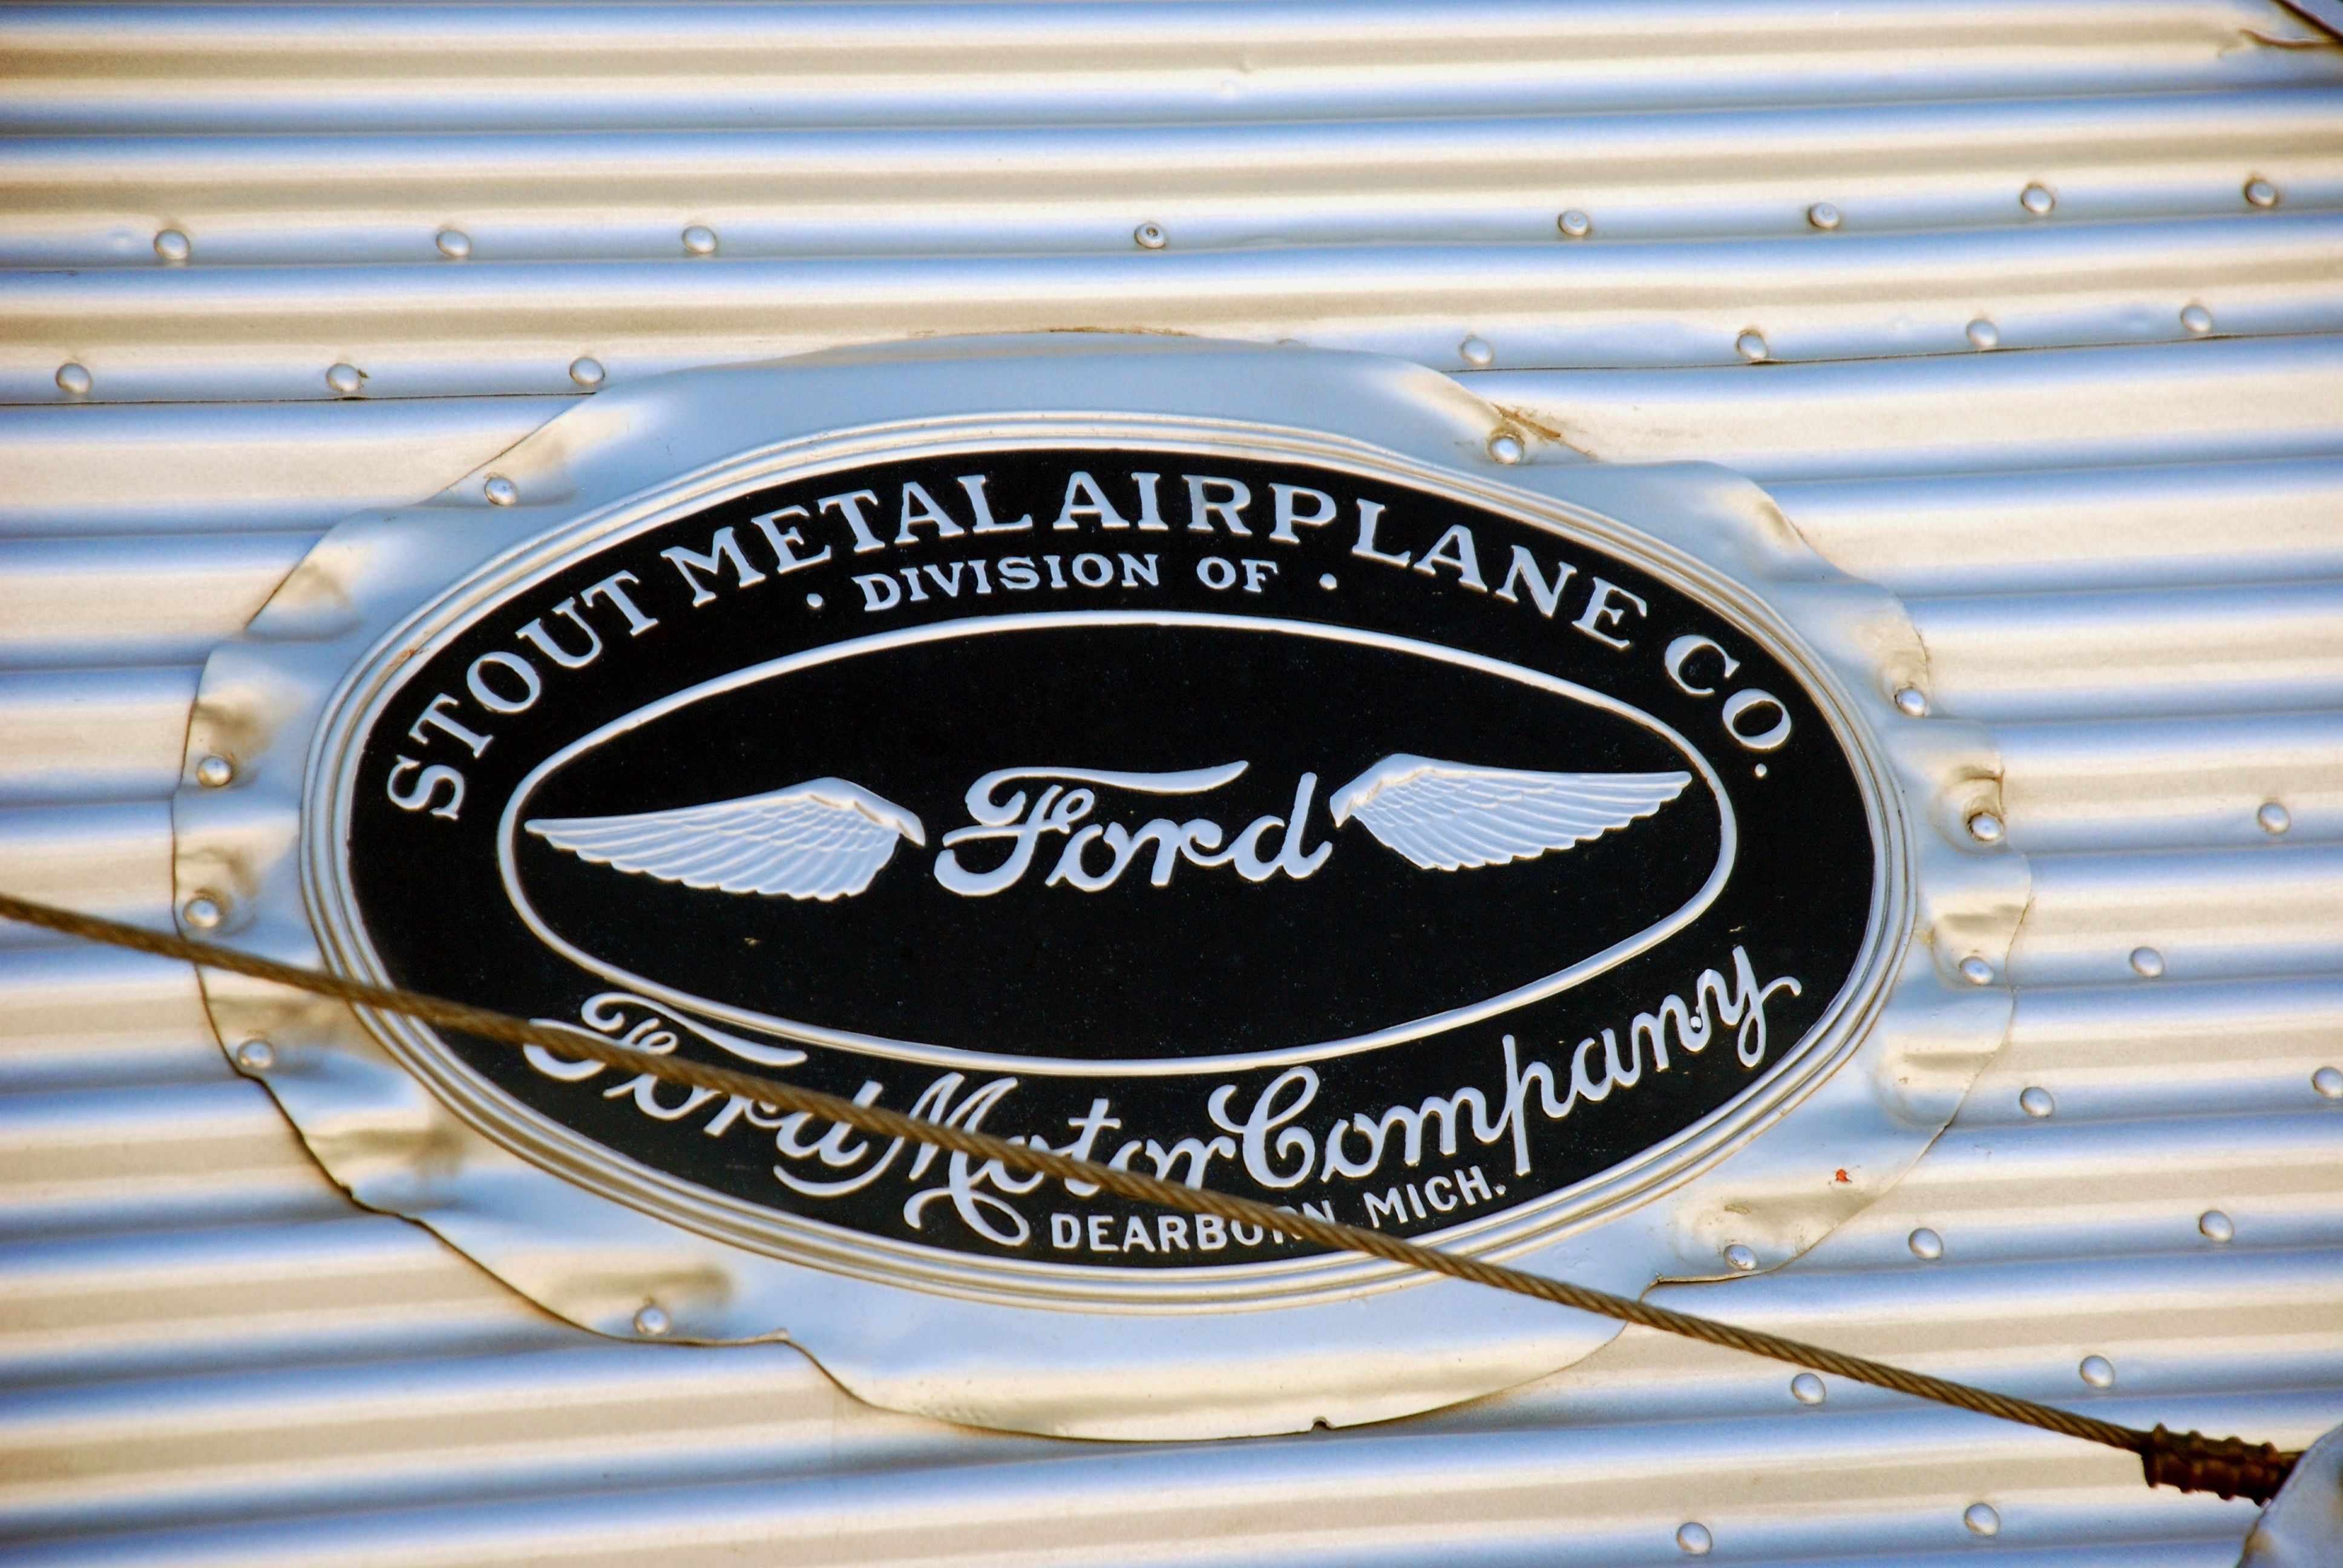 Stout metal airplane company a division of ford motor for The ford motor company